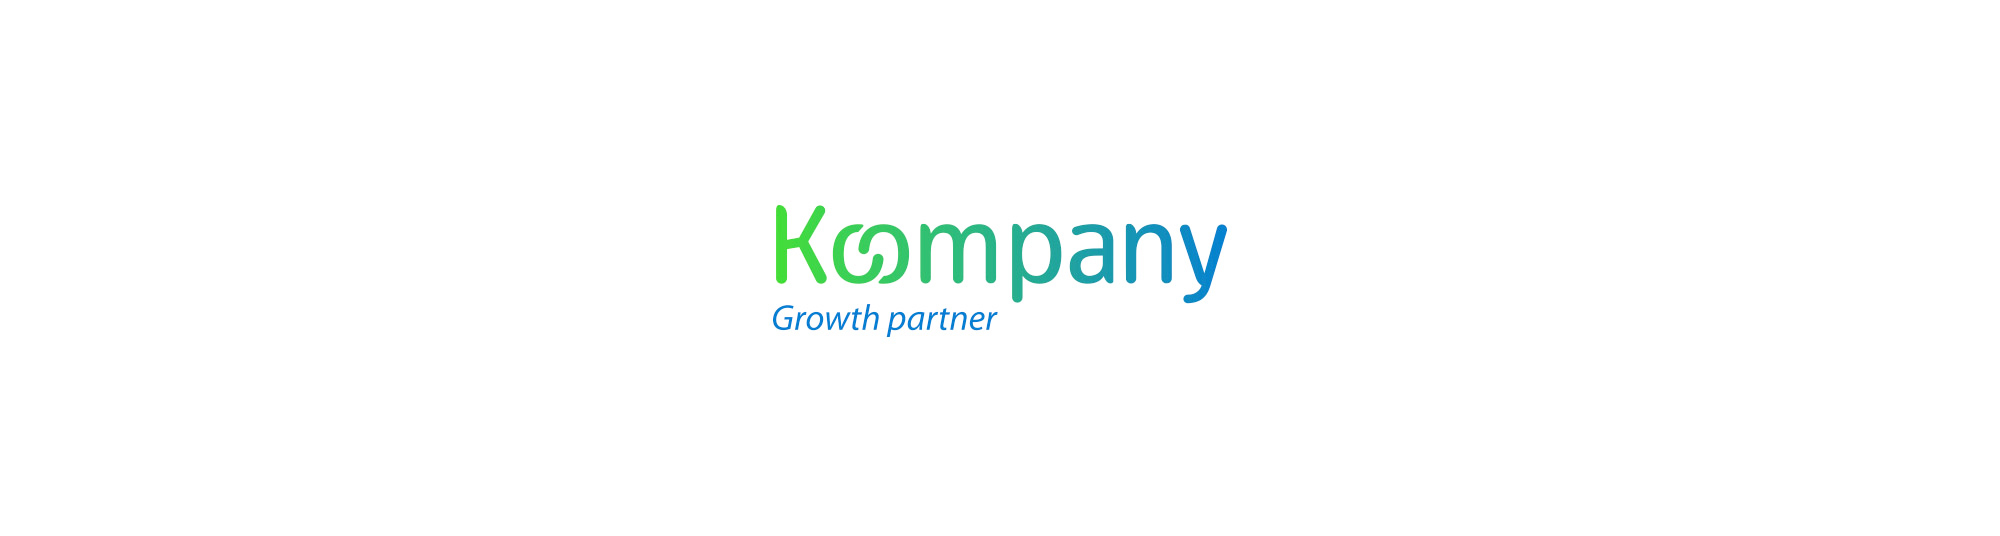 Logotipo diseñado para la marca koompany, empresa gallega de marketing digital